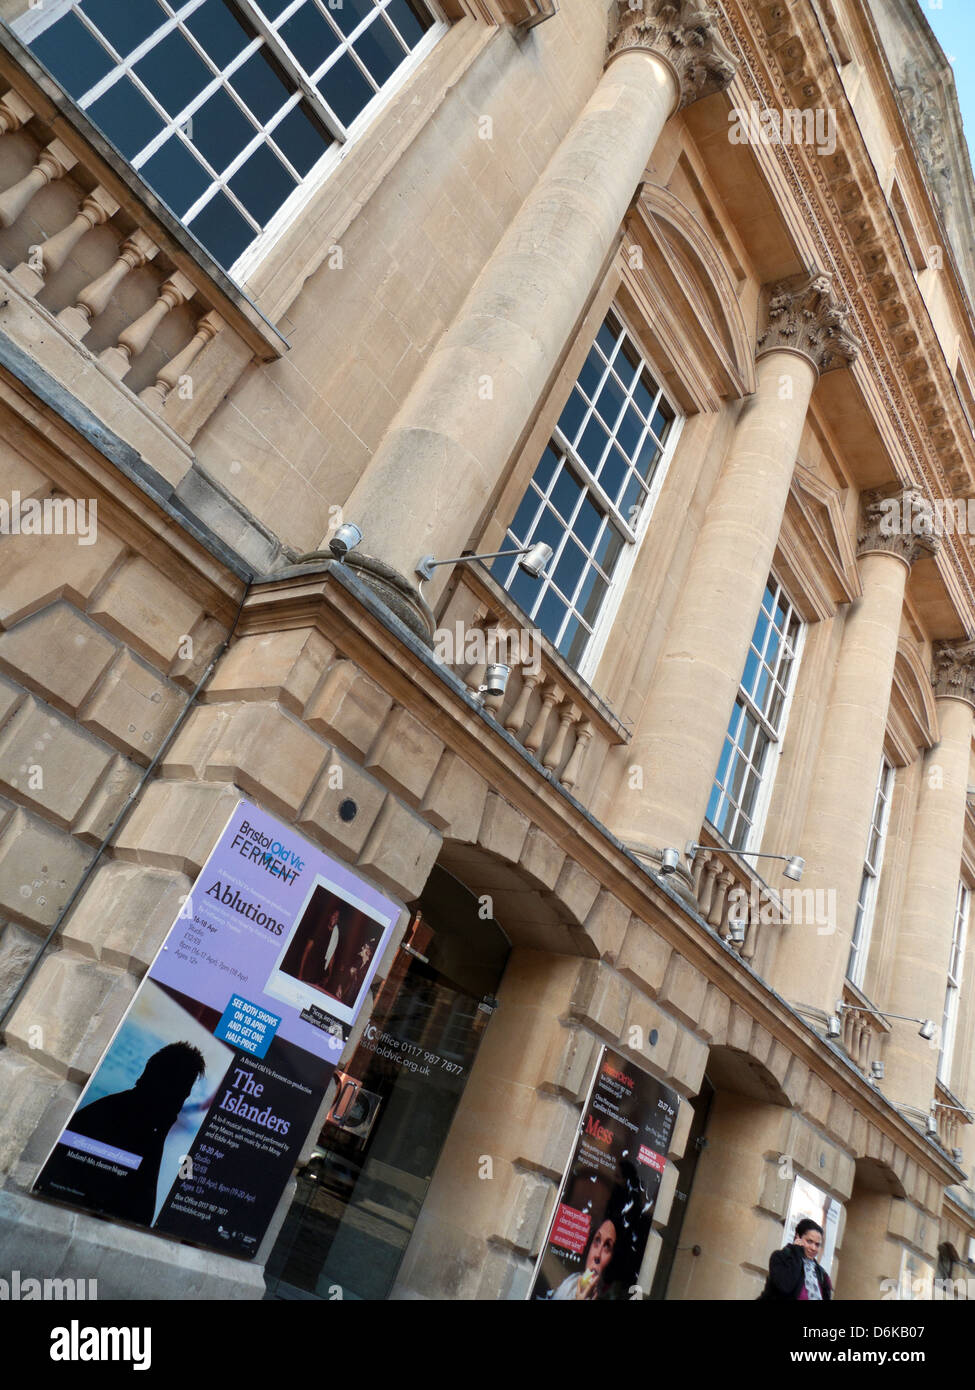 Advertising posters on the front of the Theatre Royal Bristol Old Vic  building on King Street in Bristol England - Stock Image